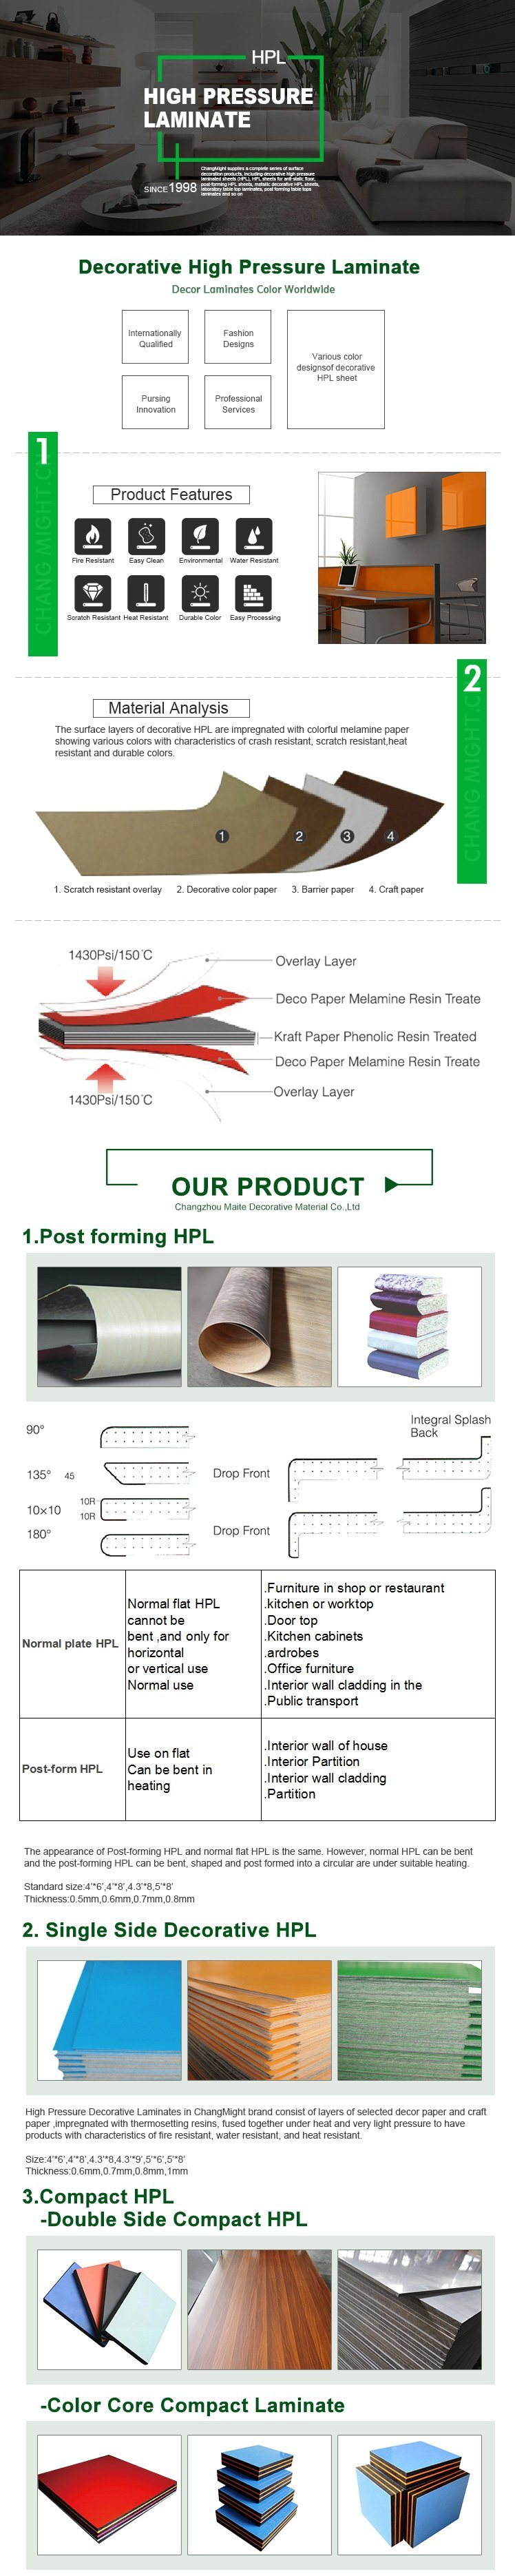 China price sheets of formica hpl high pressure laminate for High pressure laminate kitchen cabinets